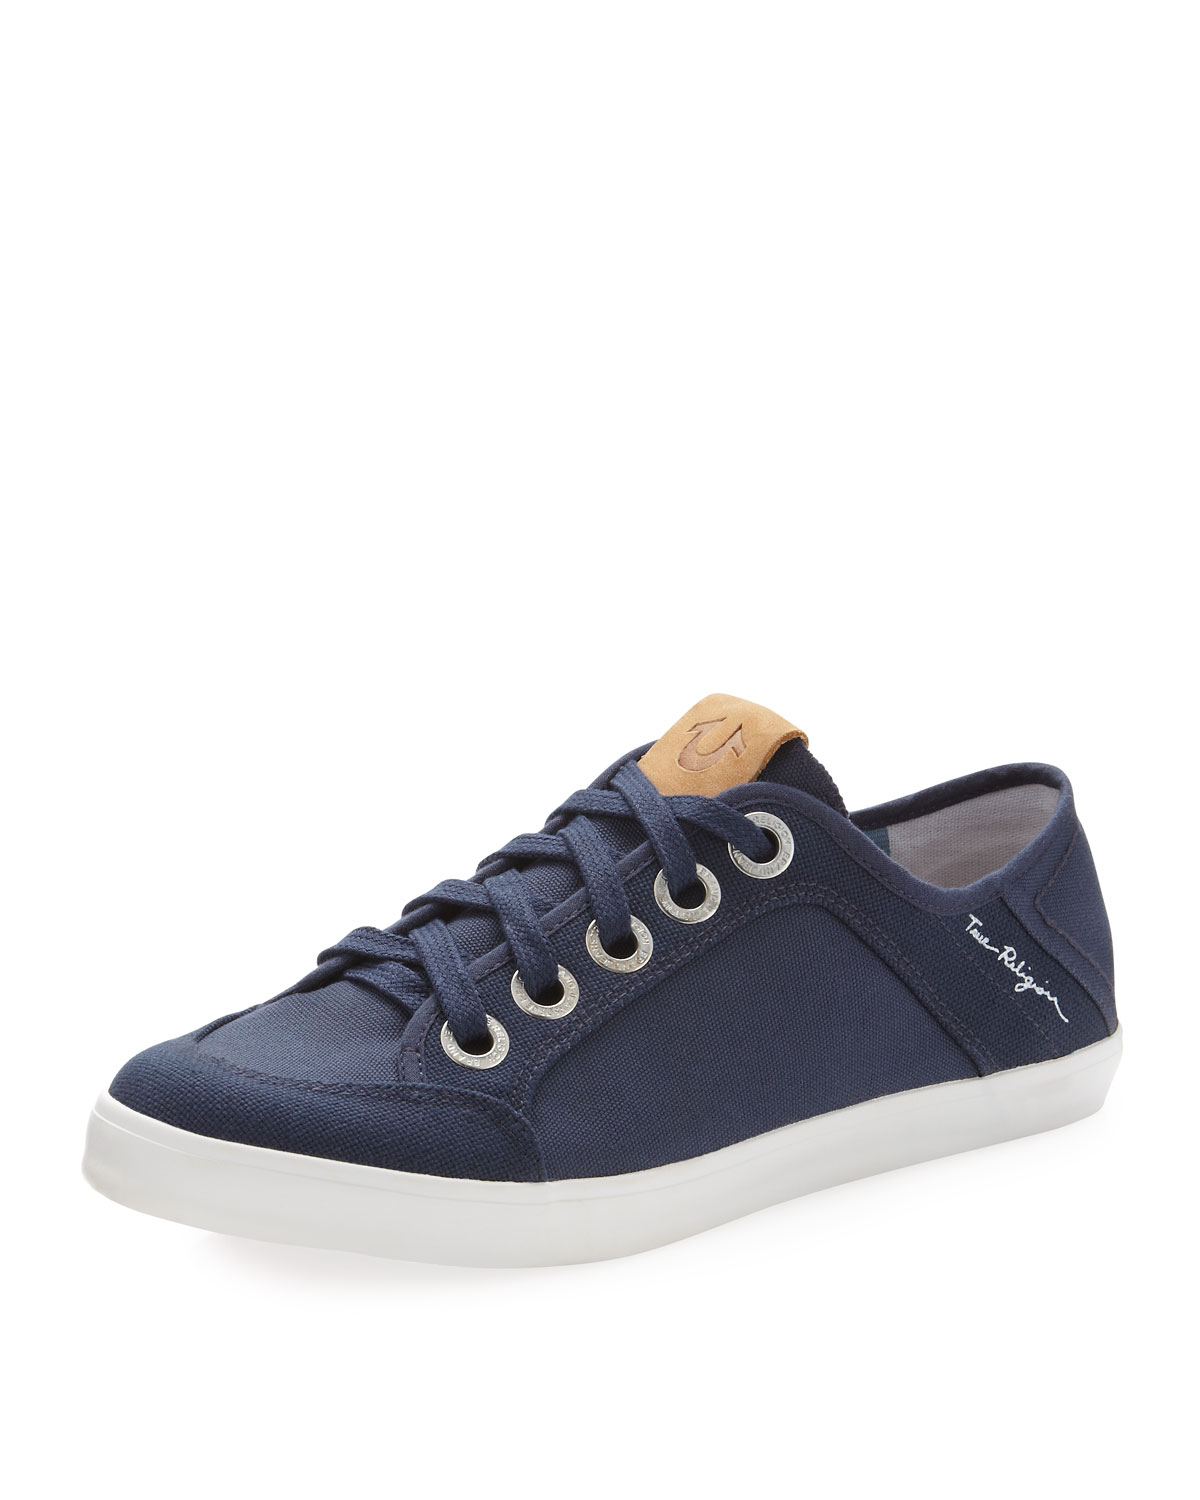 true religion eric canvas sneaker in blue for navy